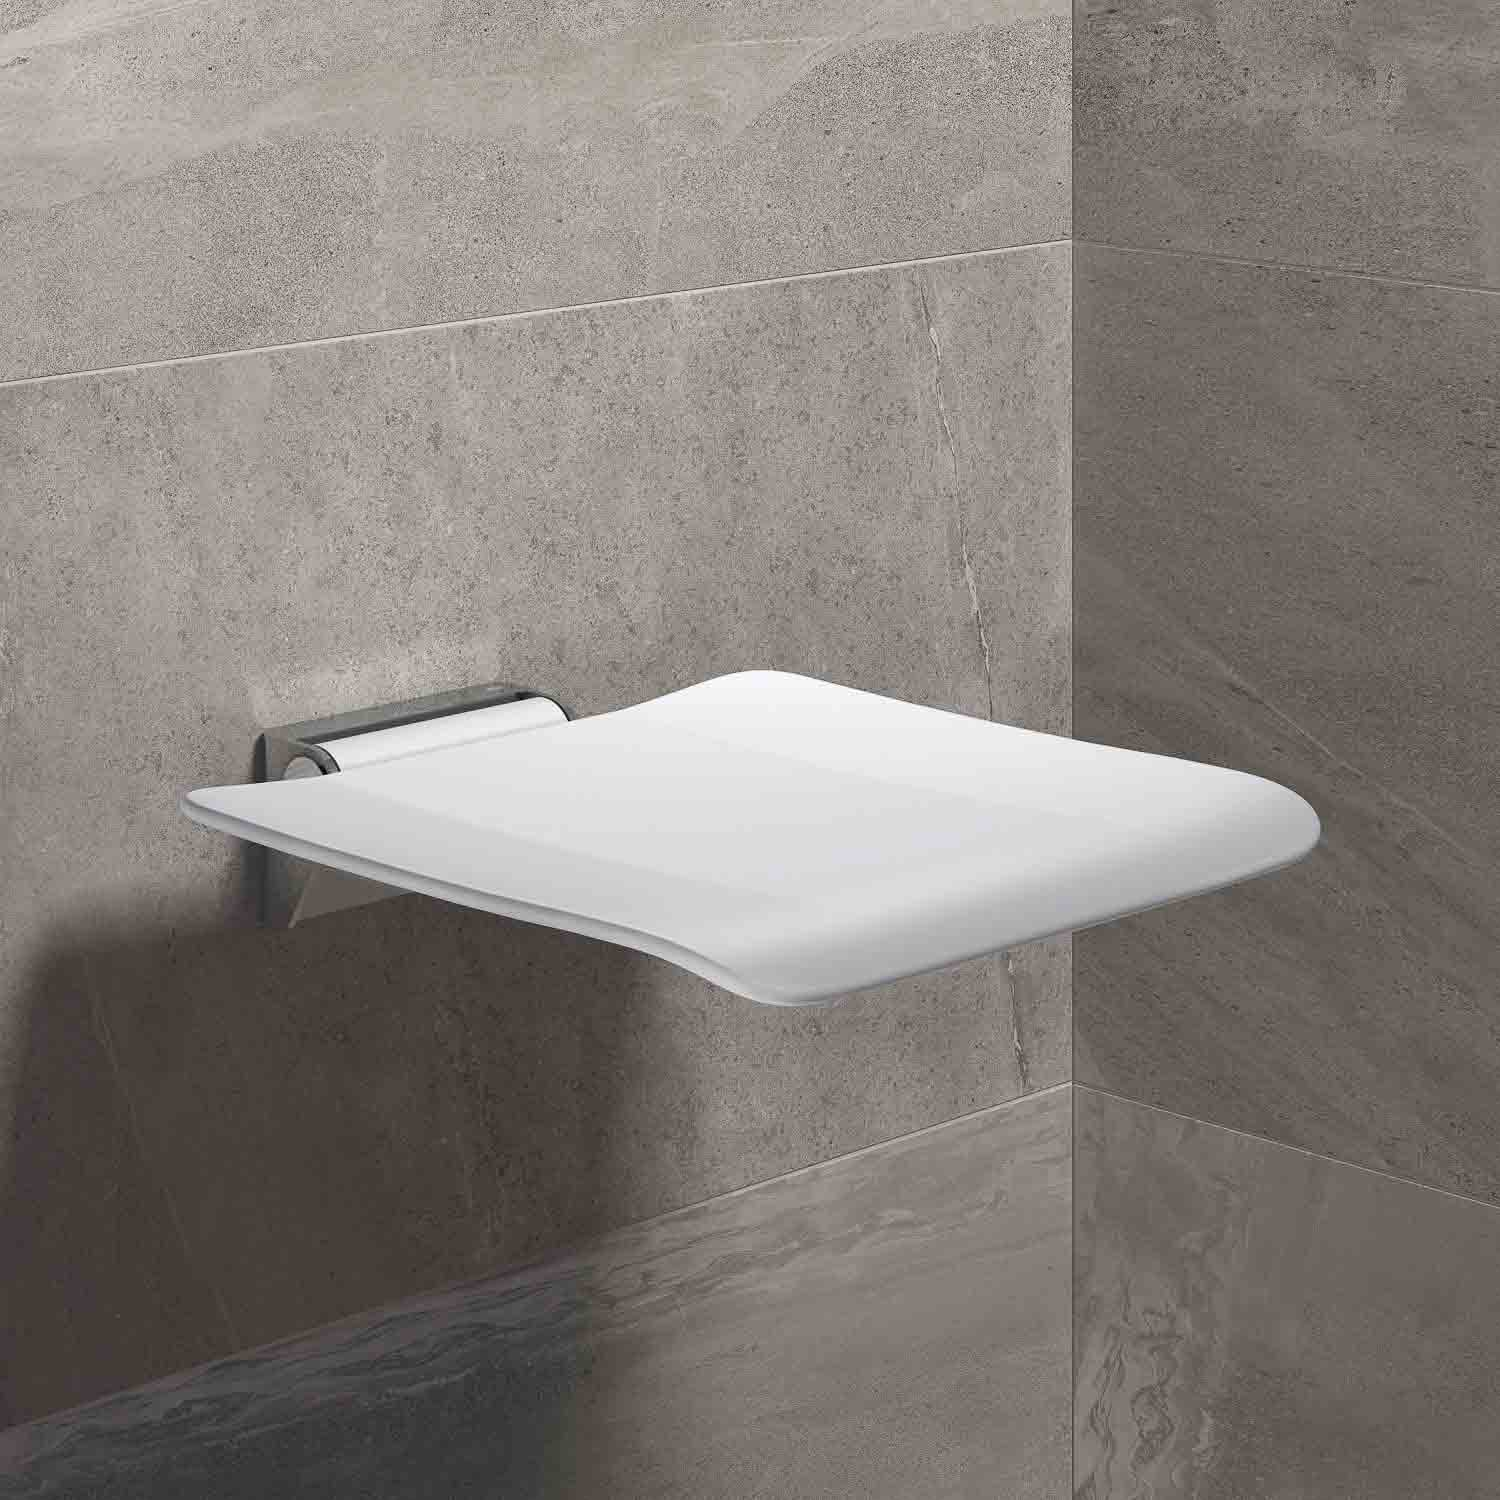 Freestyle Removable Shower Seat Set with a white Seat Set and chrome bracket lifestyle image